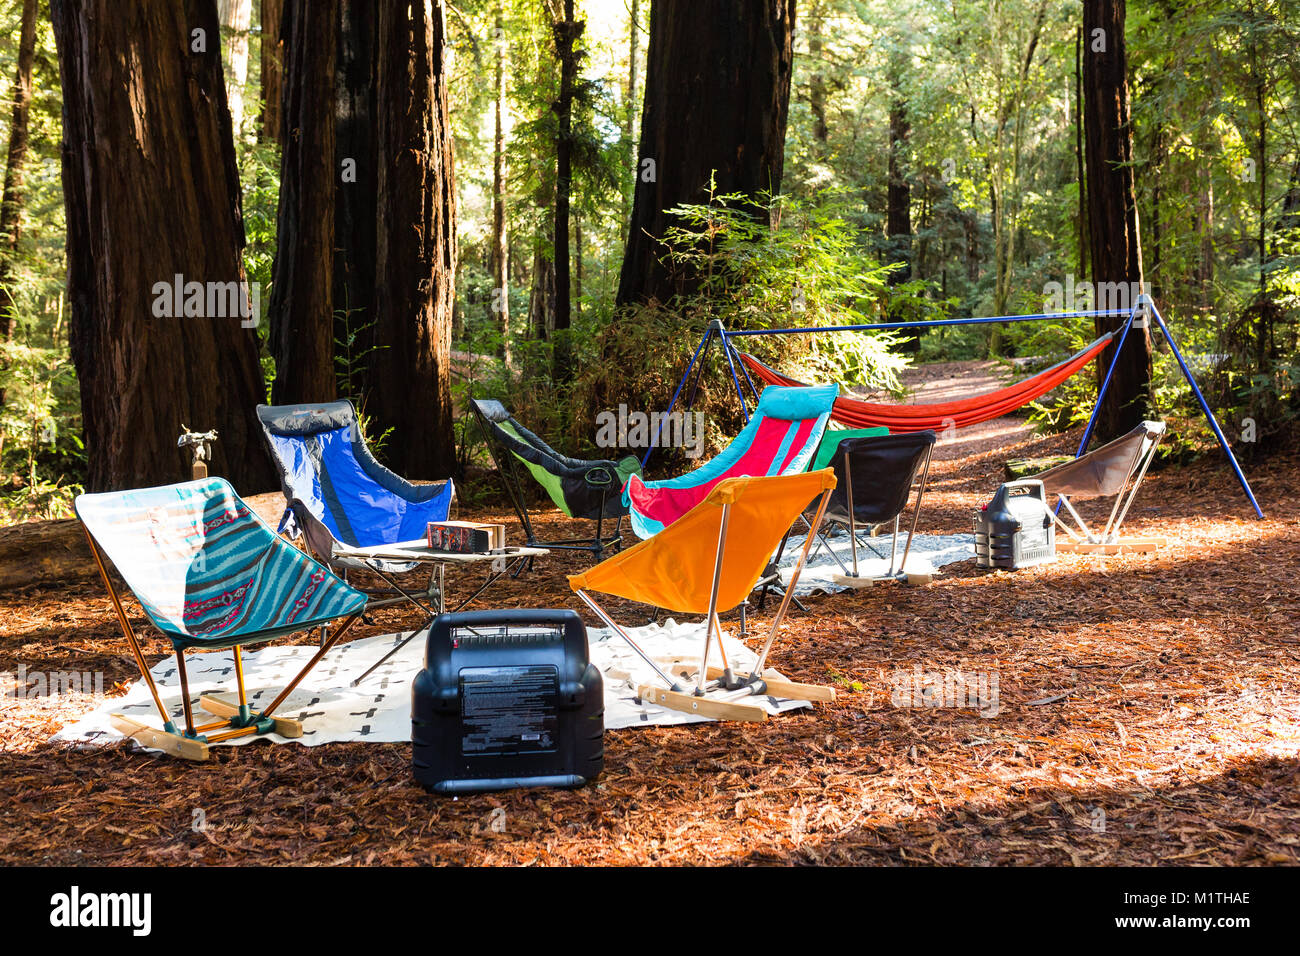 Folding Camping Chairs And Hammocks Decorate A Campsite In A